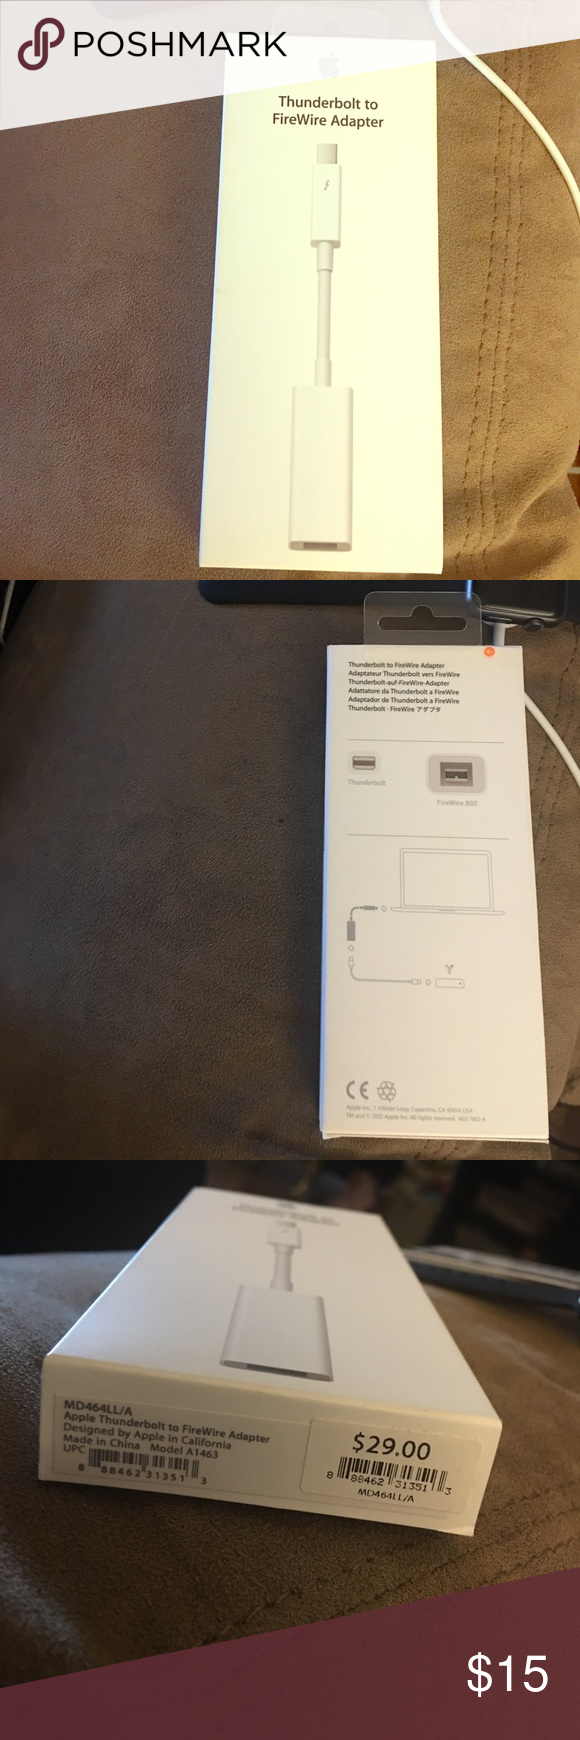 New Apple Thunderbolt to FireWire Adapter Small and compact, it ...